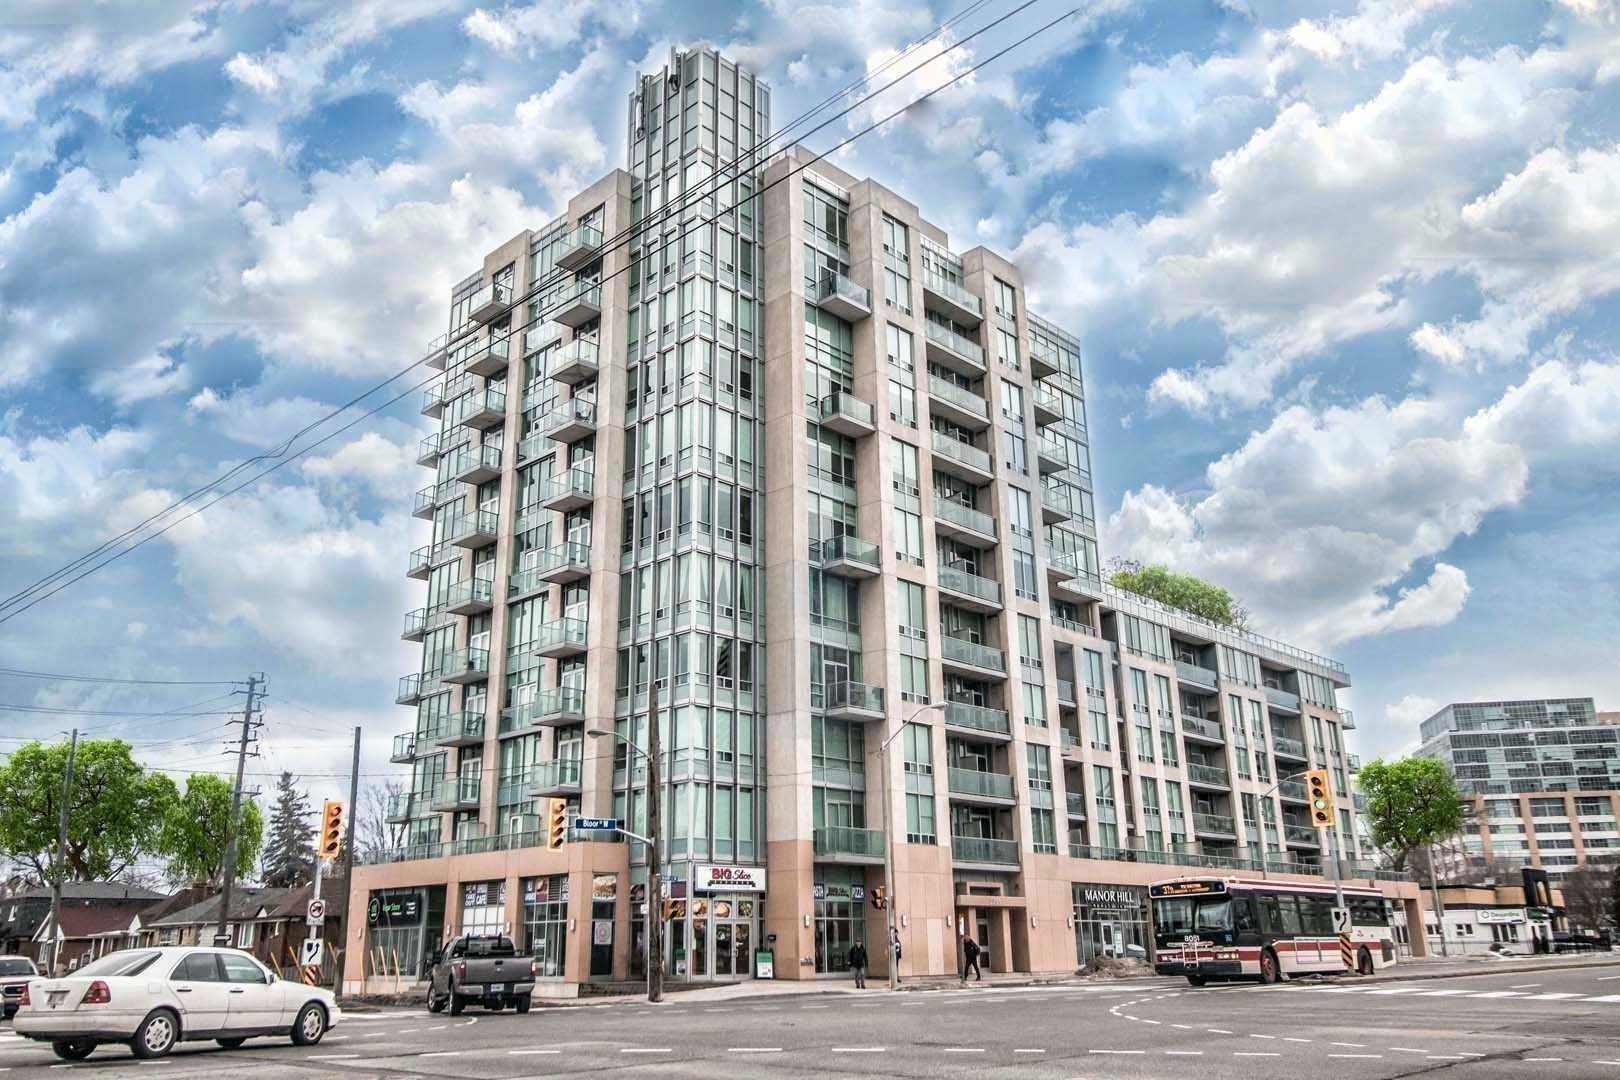 3391 Bloor St W, unit 512 for rent in Toronto - image #1